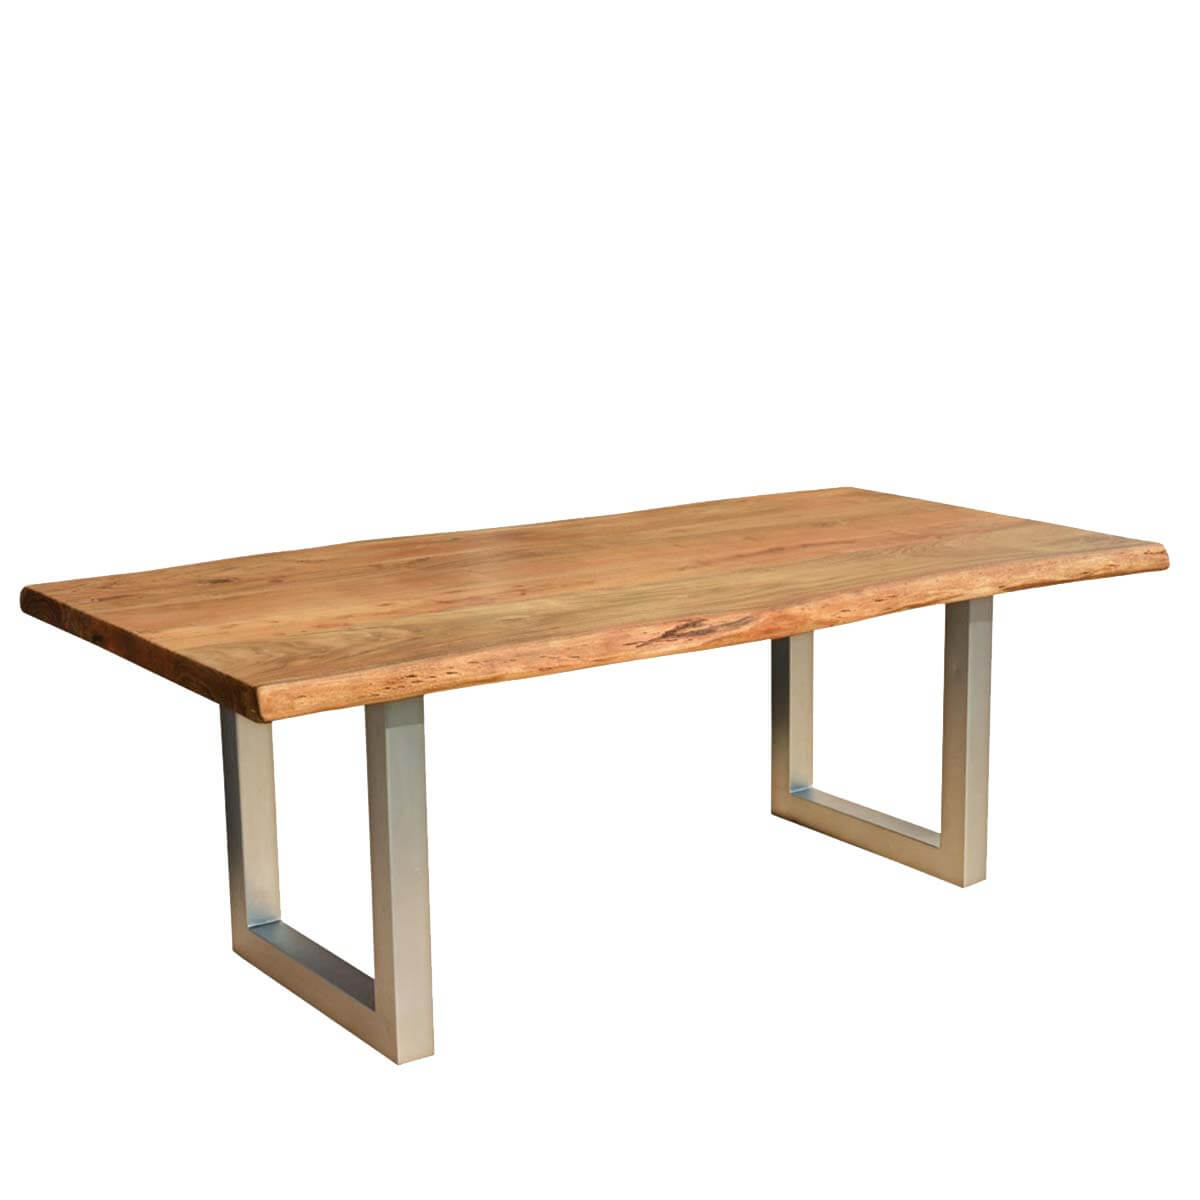 Hankin Wood   Iron Base Live Edge Dining Table. Custom Made Large Rustic Dining Tables